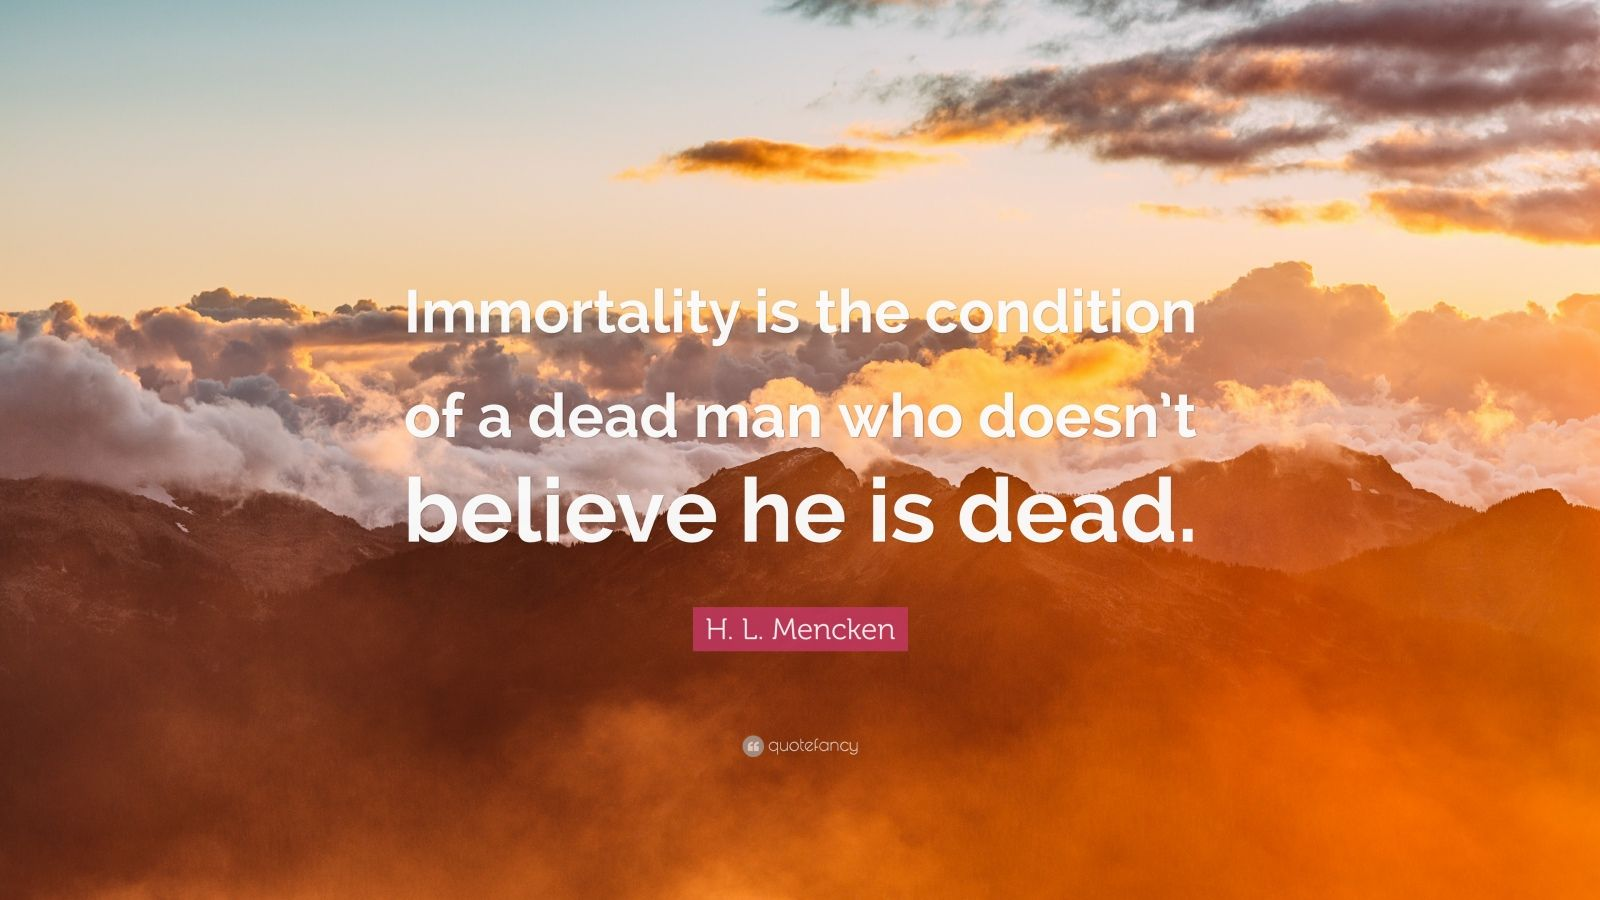 """H. L. Mencken Quote: """"Immortality is the condition of a dead man who doesn't believe he is dead."""""""